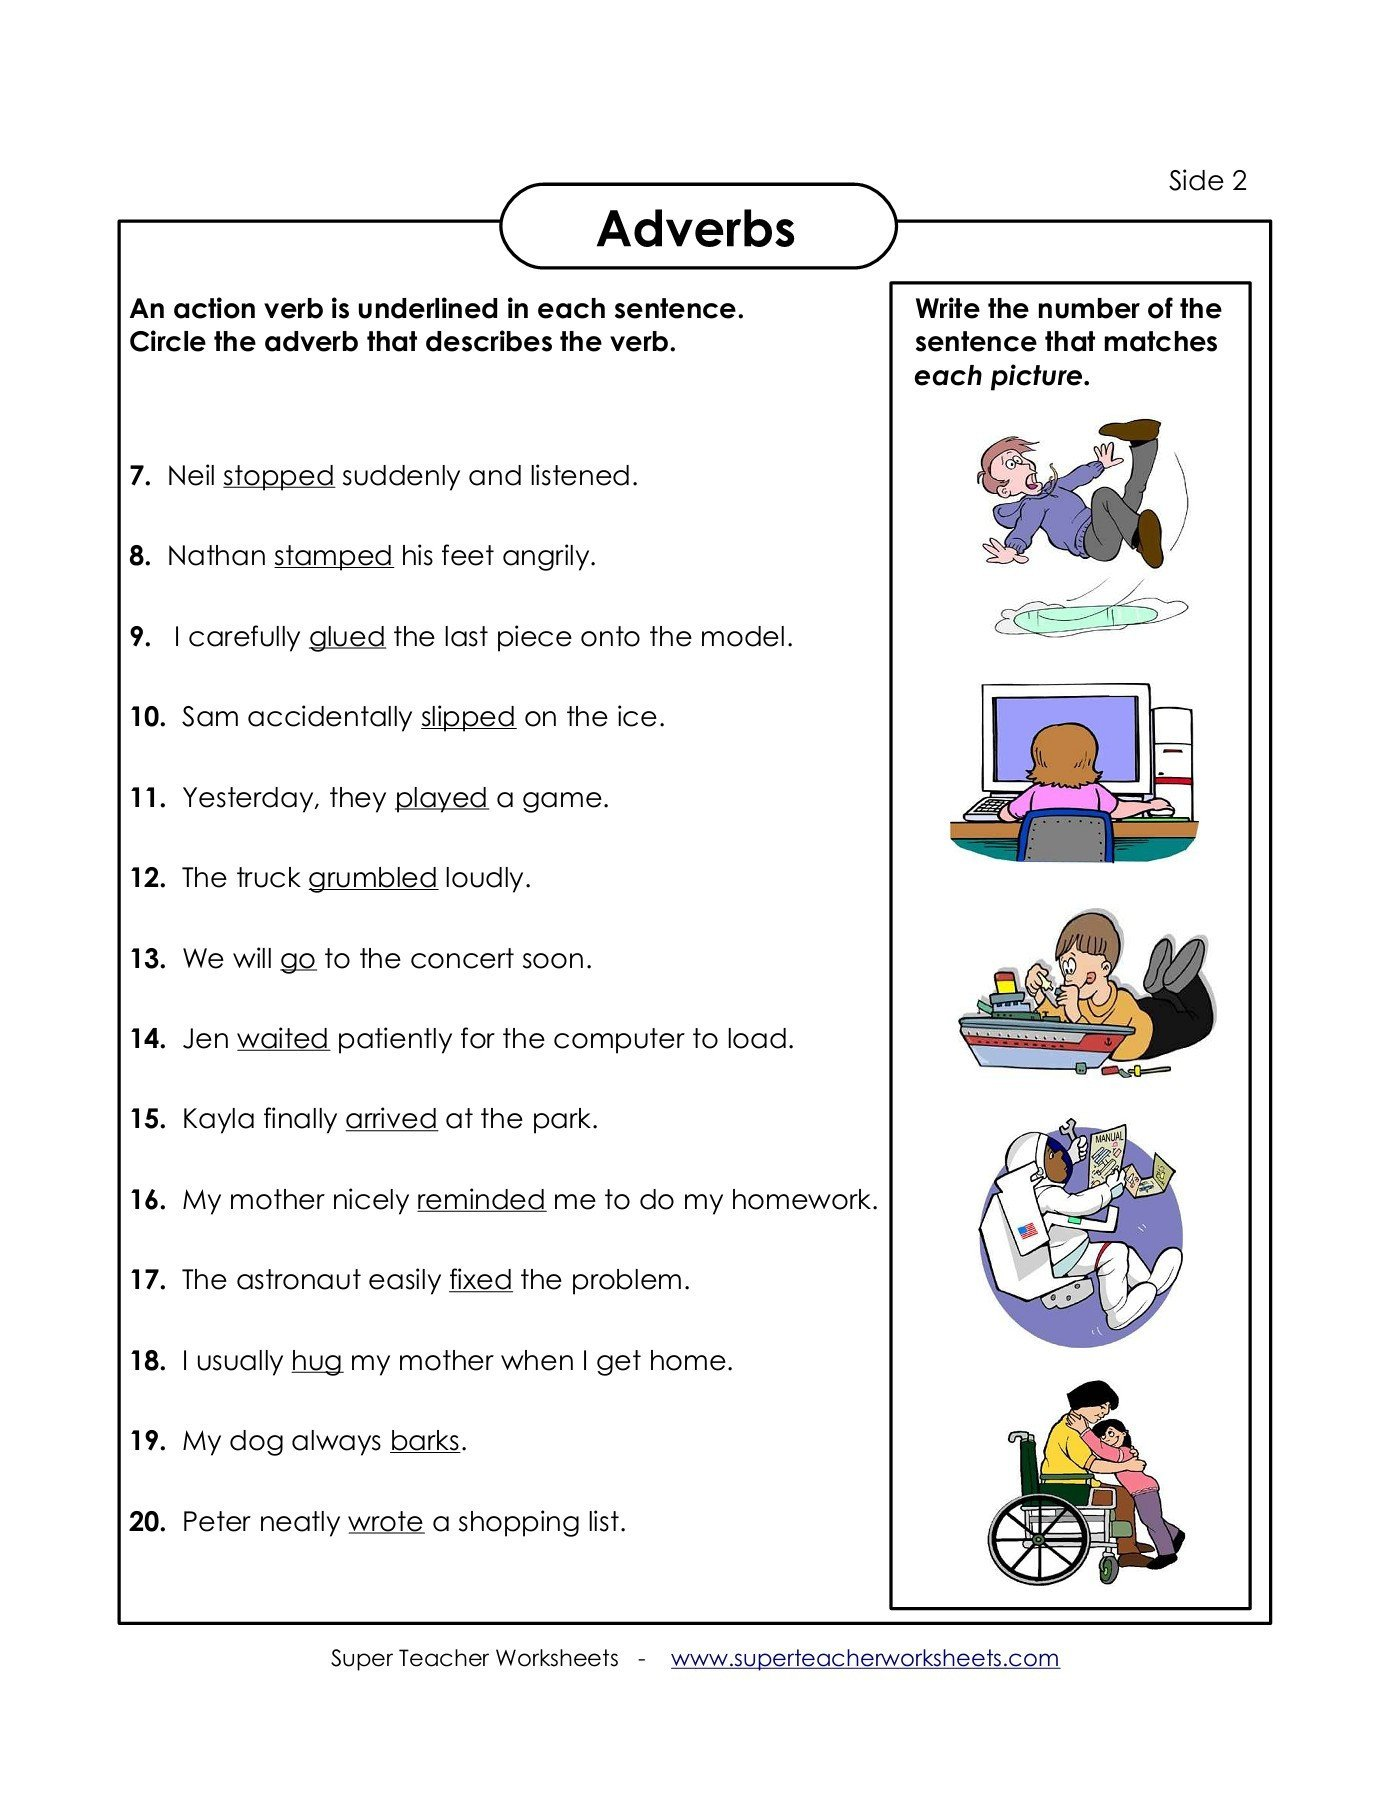 Super Teacher Worksheet Answers Adverbs Super Teacher Worksheets Pages 1 4 Text